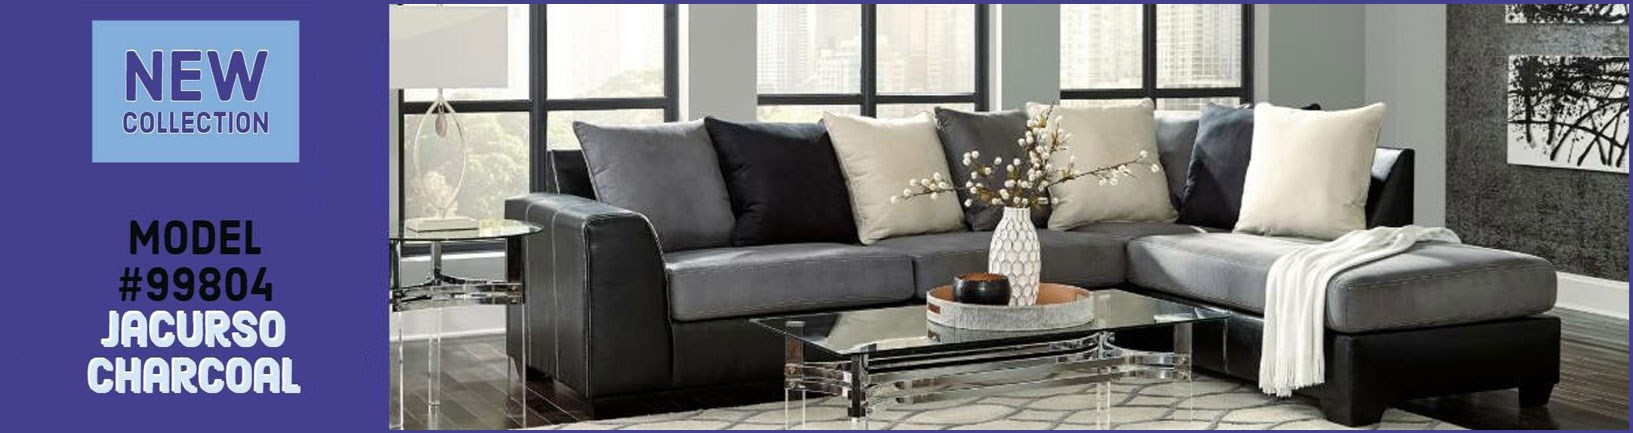 New Collection Available at Nassau Furniture